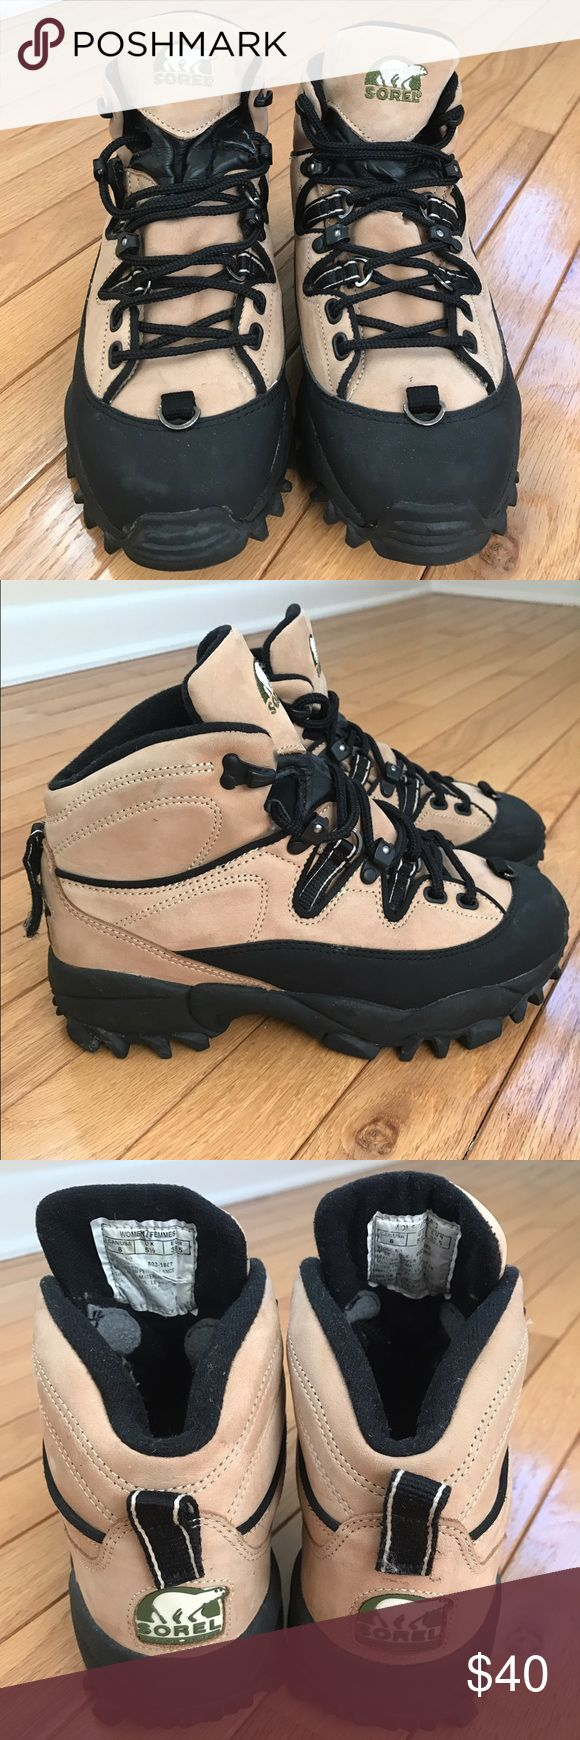 Sorel Winter Boots Worn a handful of times, great condition ! Perfect for hiking especially in fall or winter Sorel Shoes Winter & Rain Boots